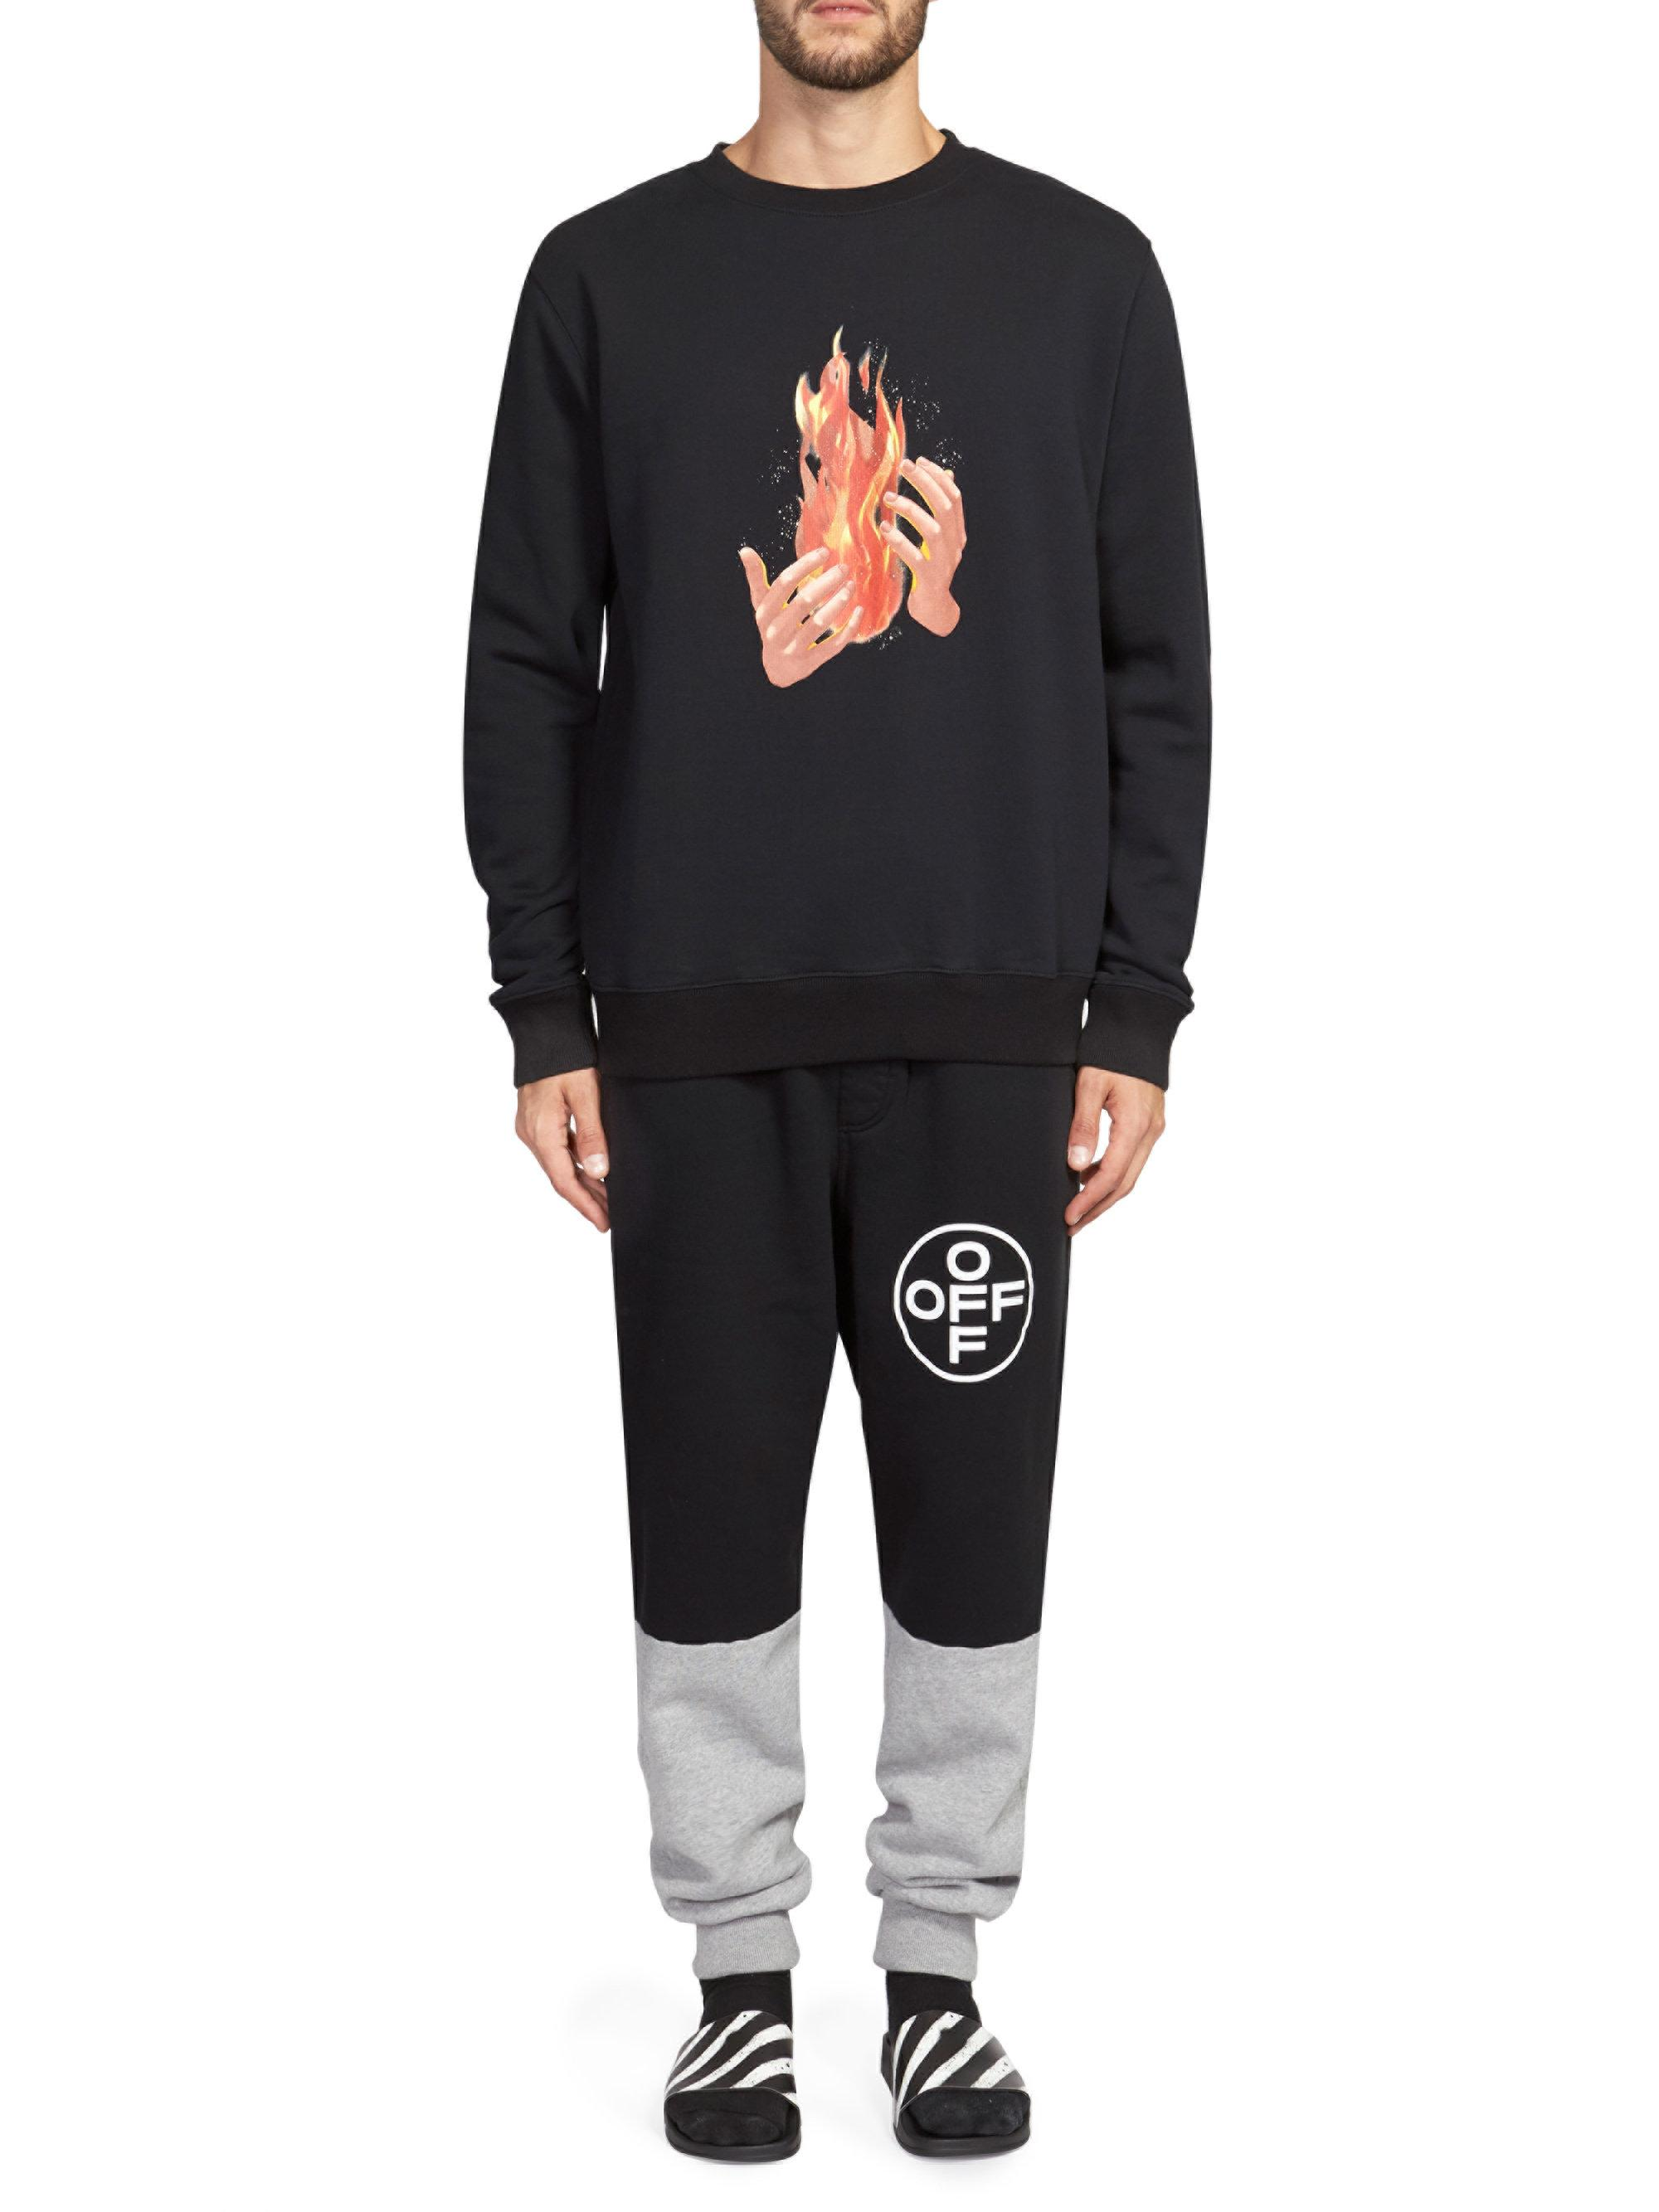 9418b9af Off-White c/o Virgil Abloh Diagonal Stripe And Fire Pullover in ...